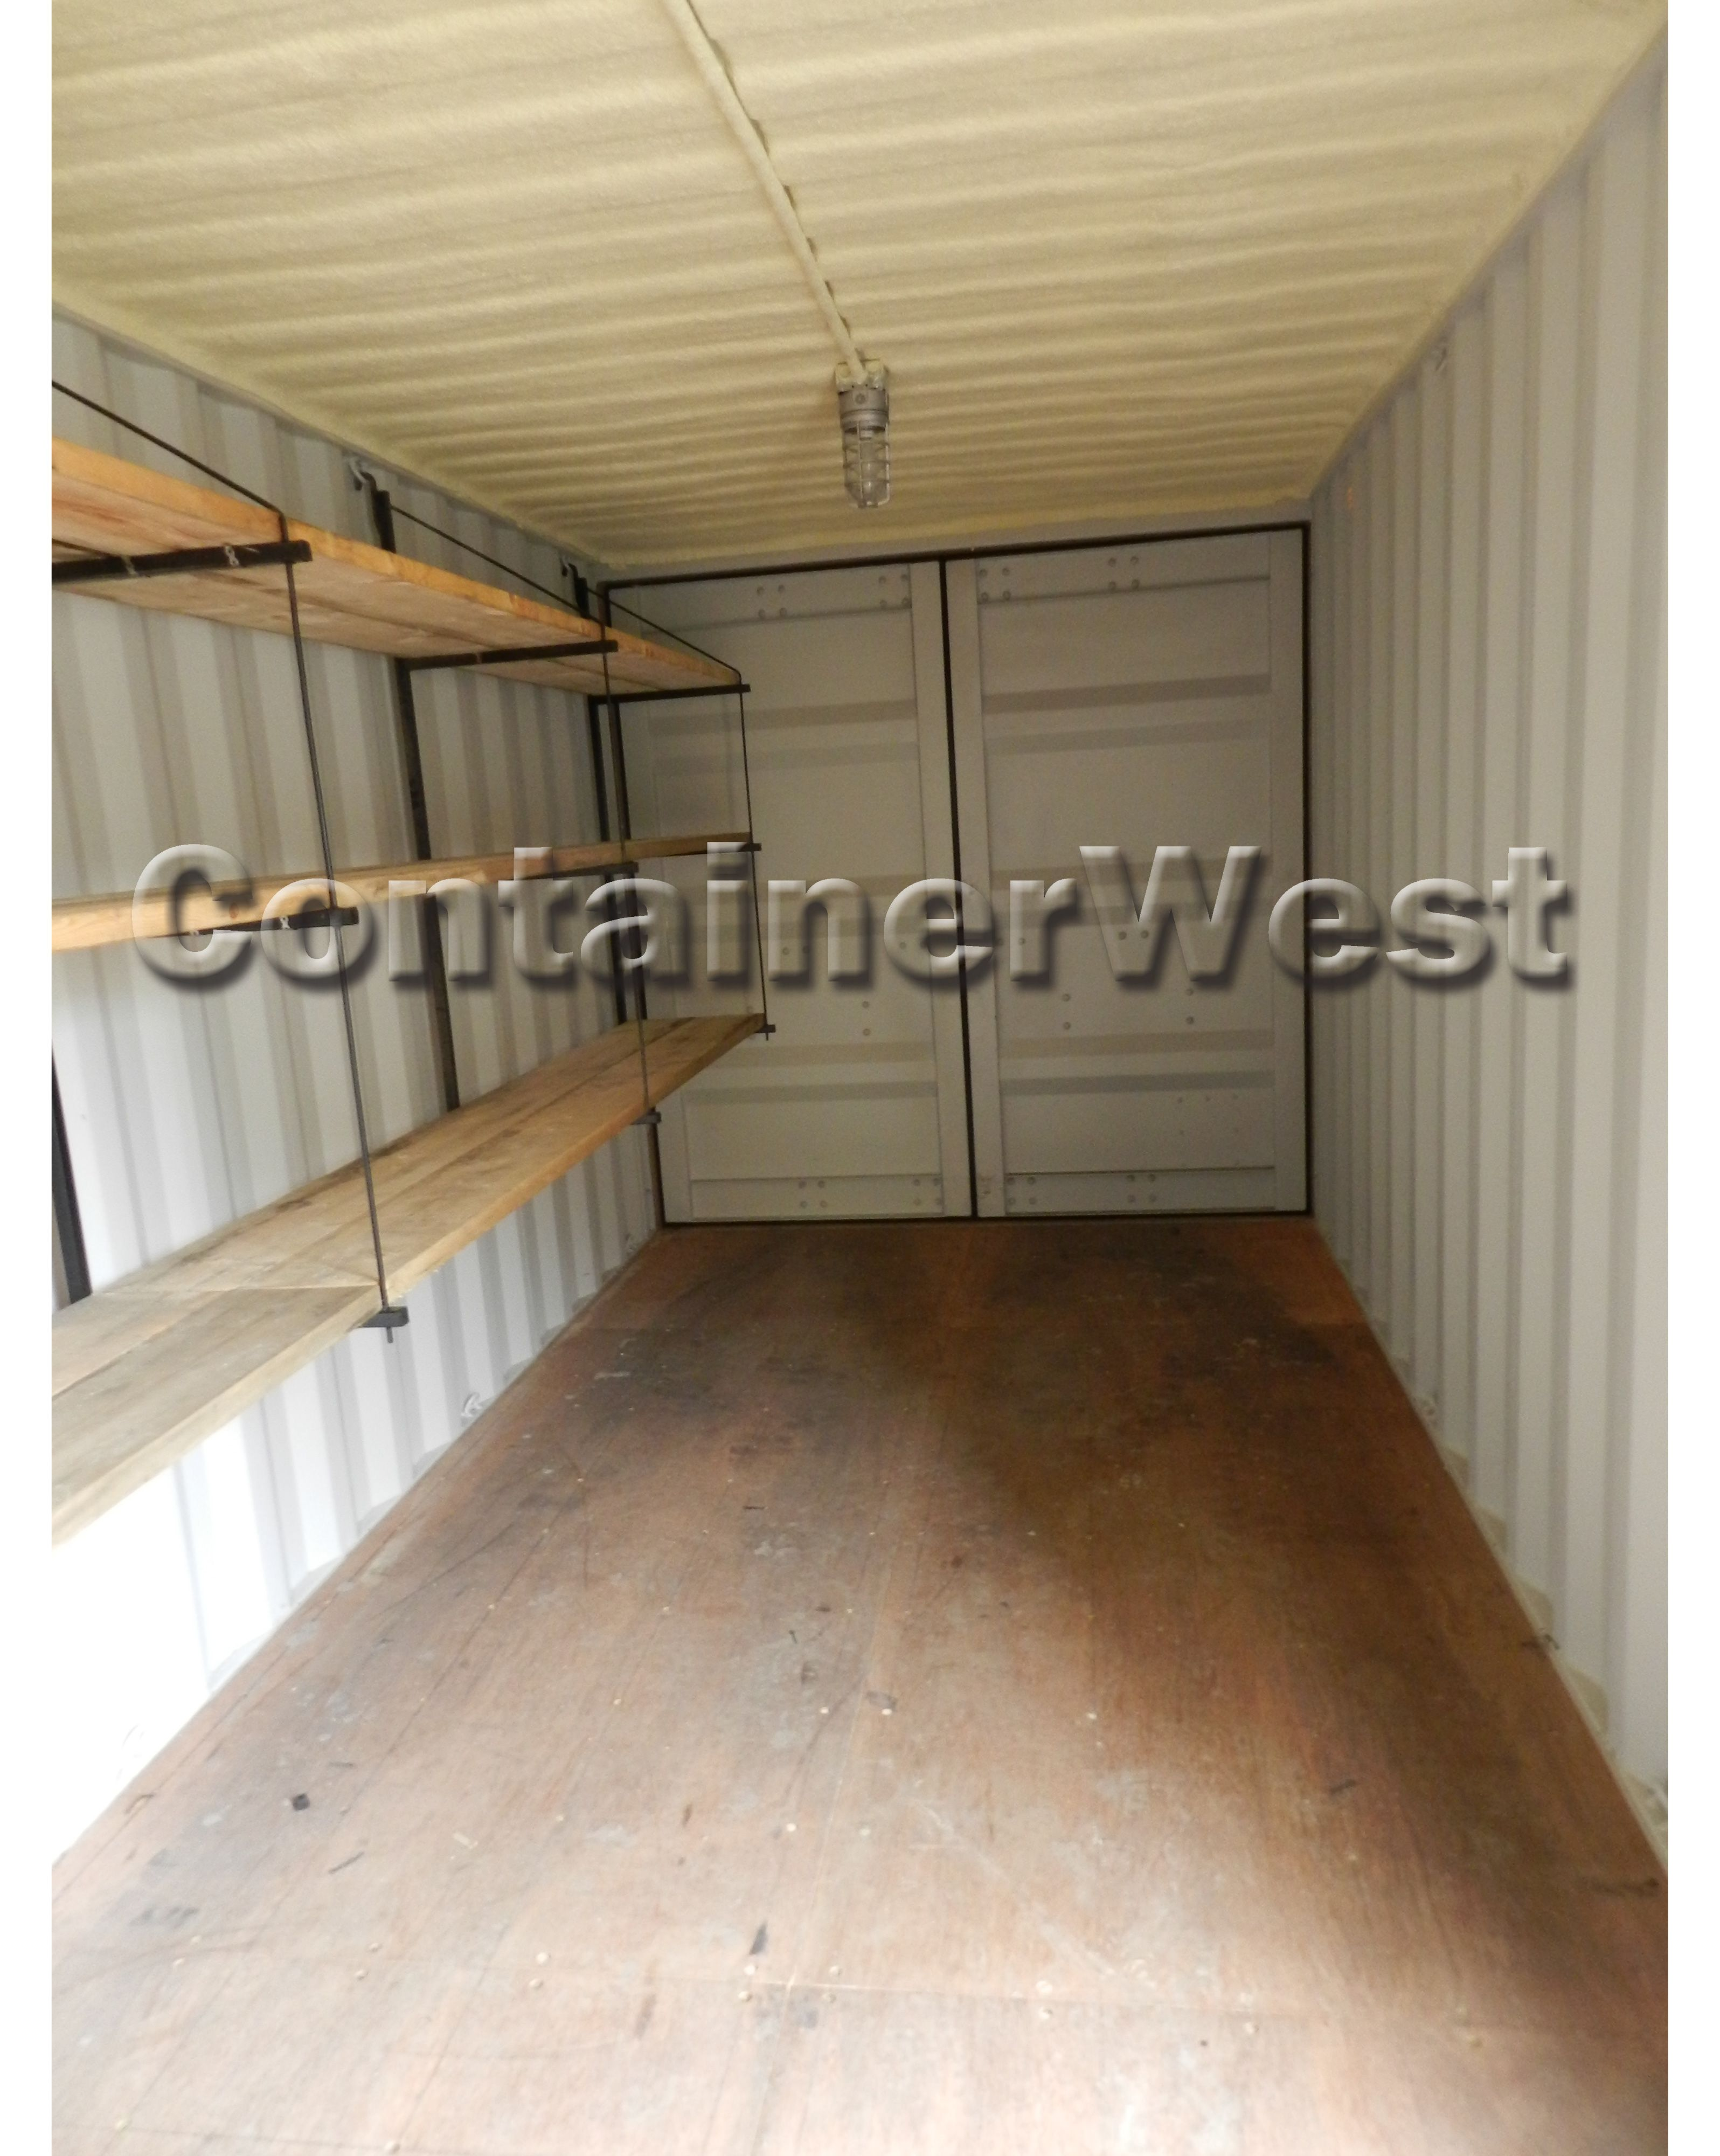 Installing Shelves Inside The Container Is A Great Idea If